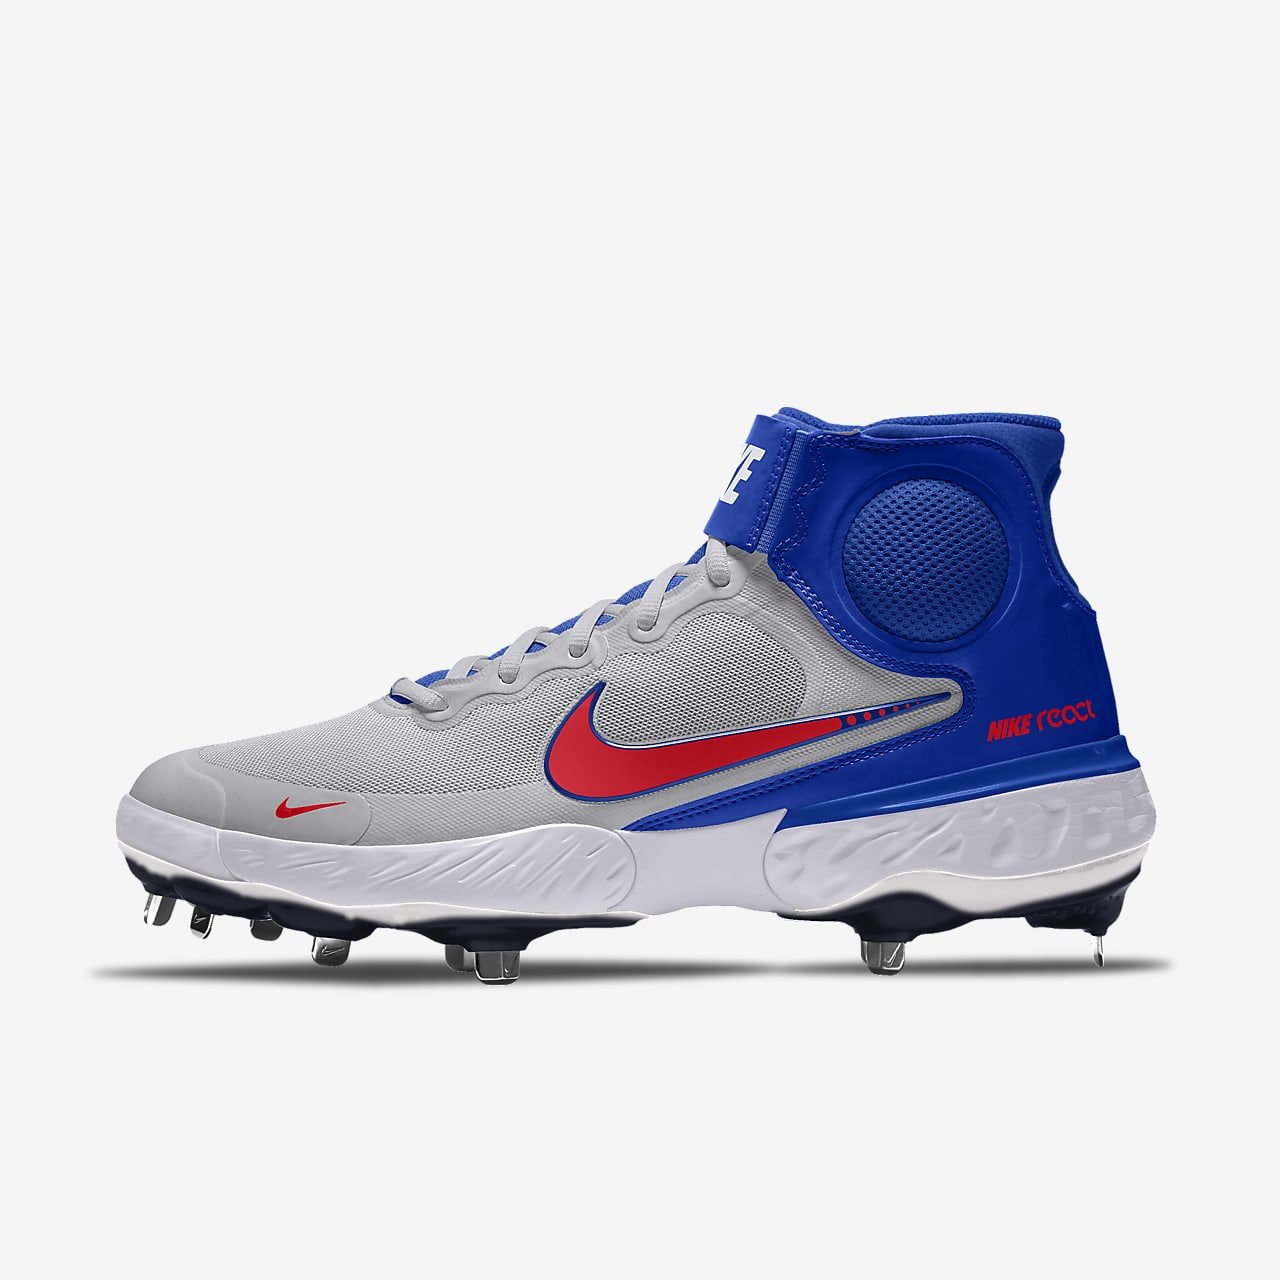 Chaussure de baseball à crampons personnalisable Nike Alpha Huarache Elite 3 Mid By You